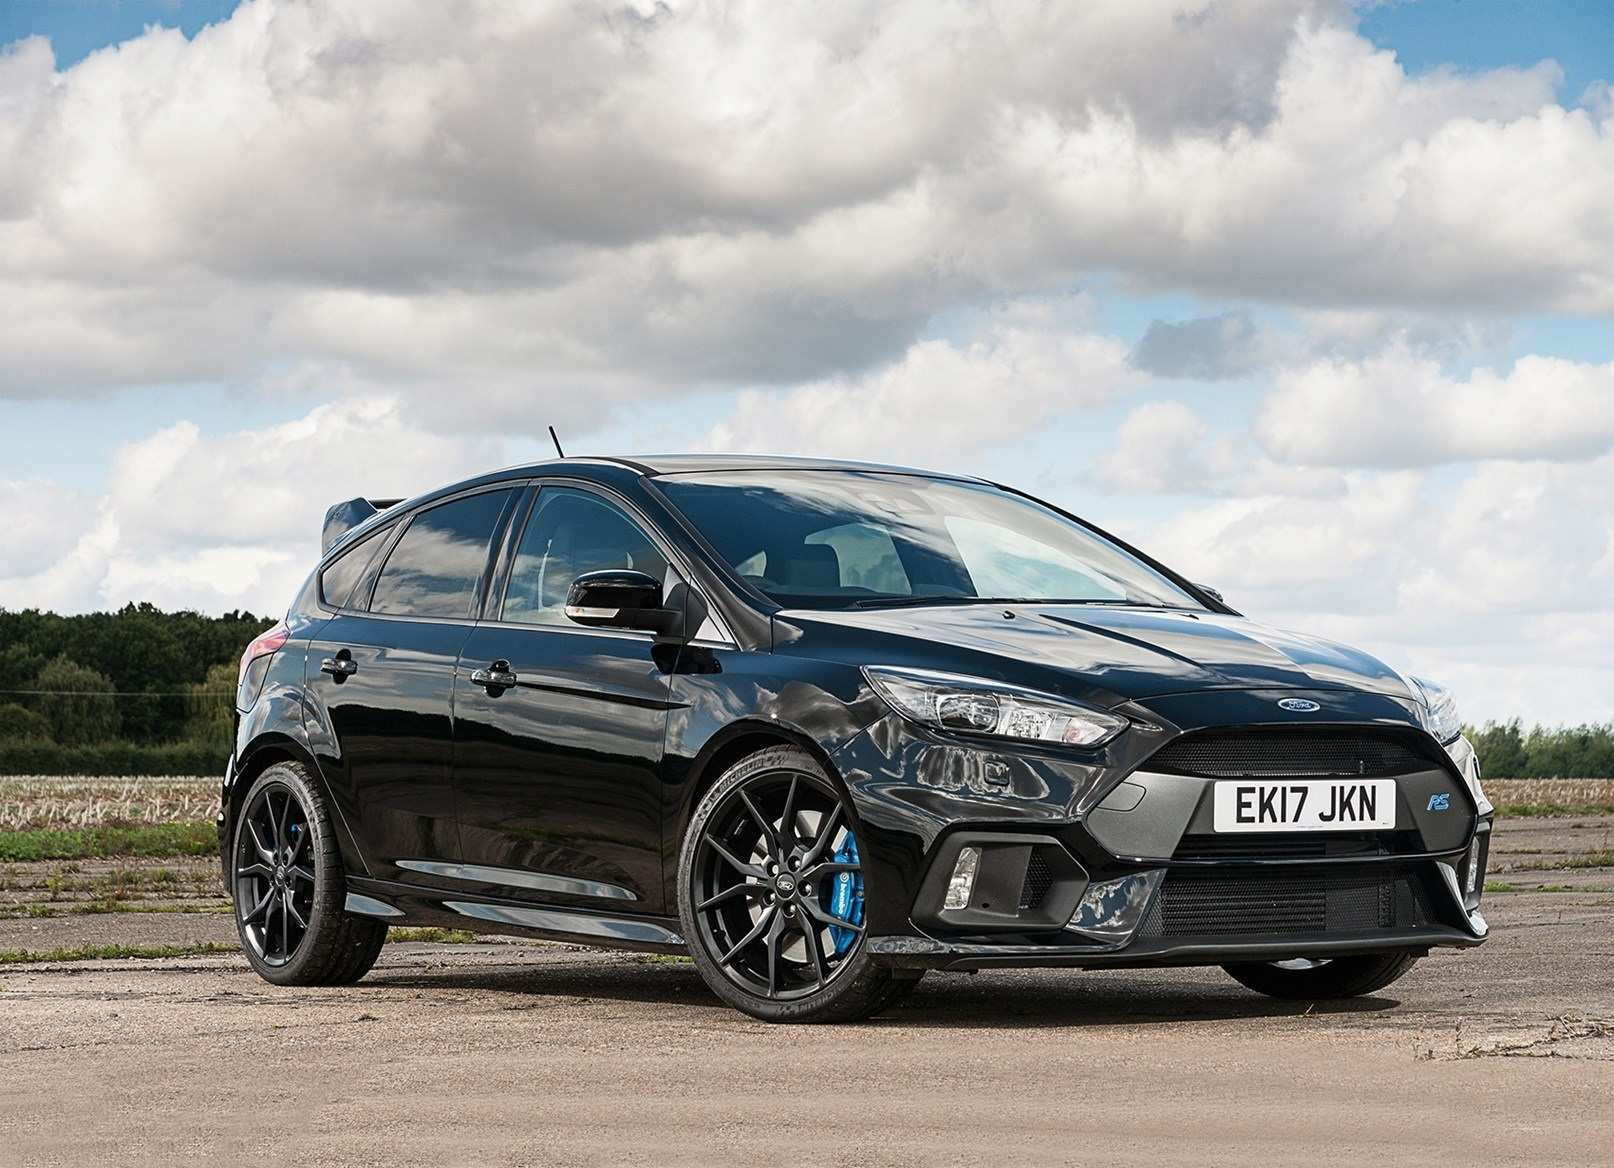 79 All New 2019 Ford Focus RS Images